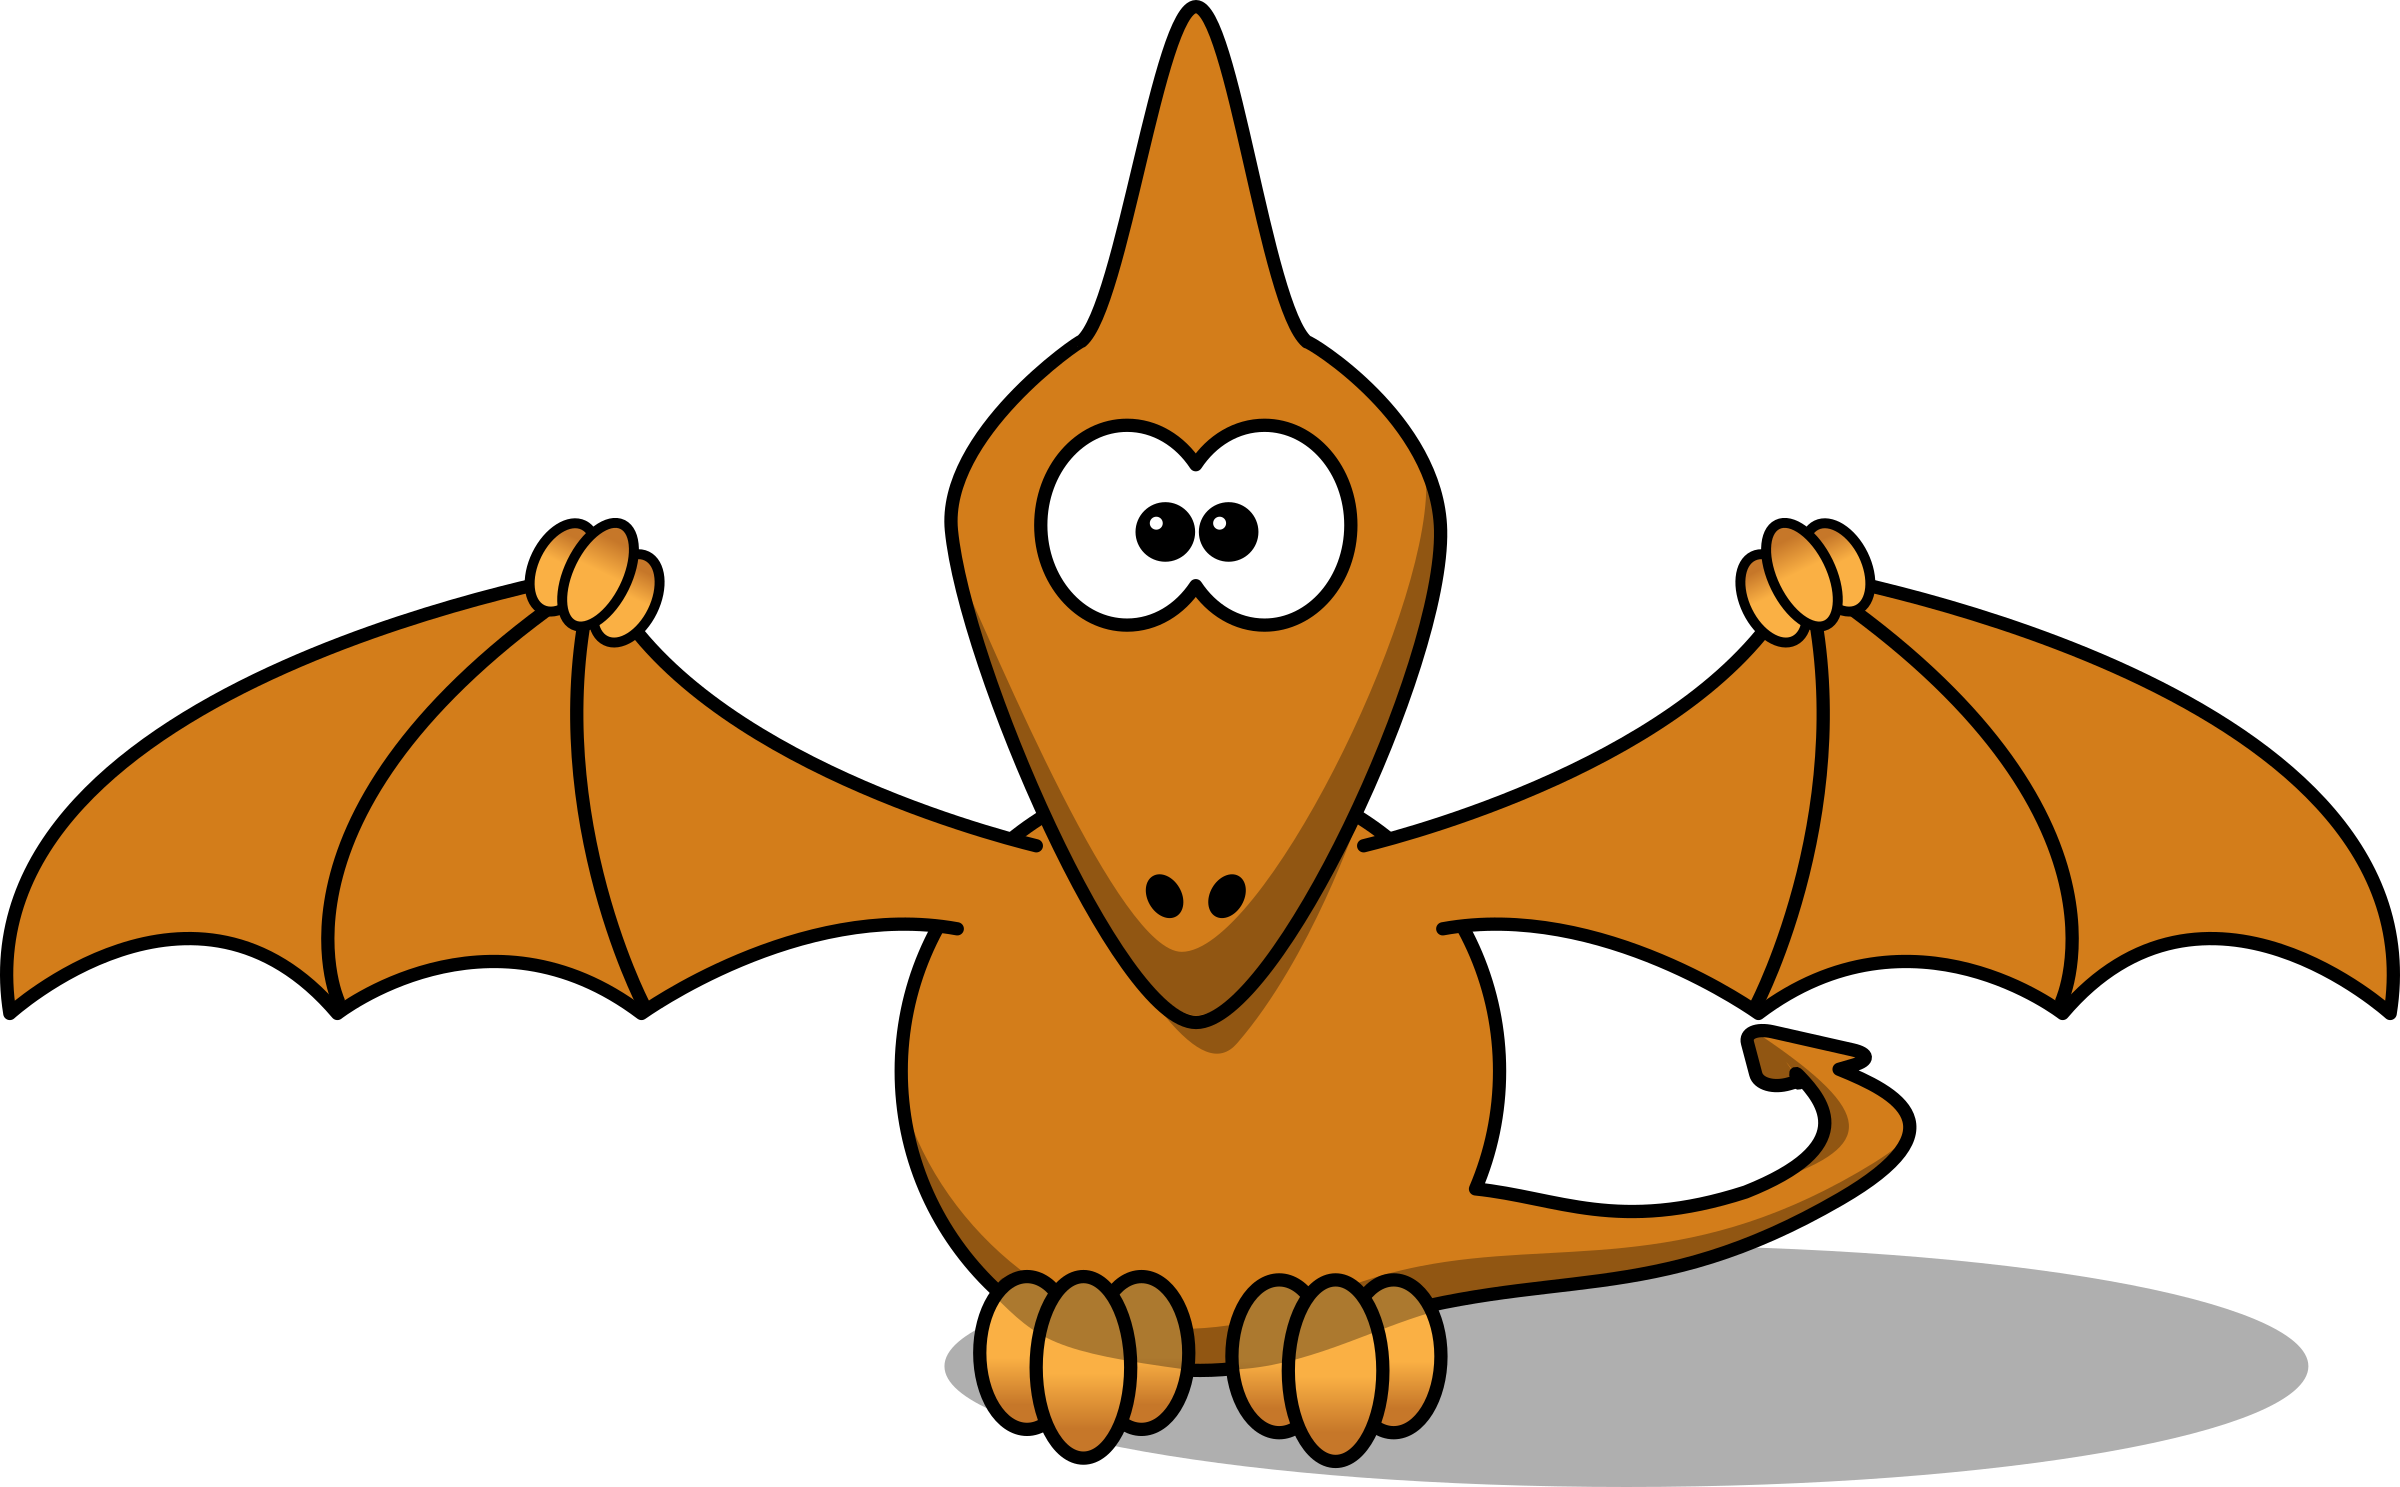 Blog o saurus cell. Wing clipart animated